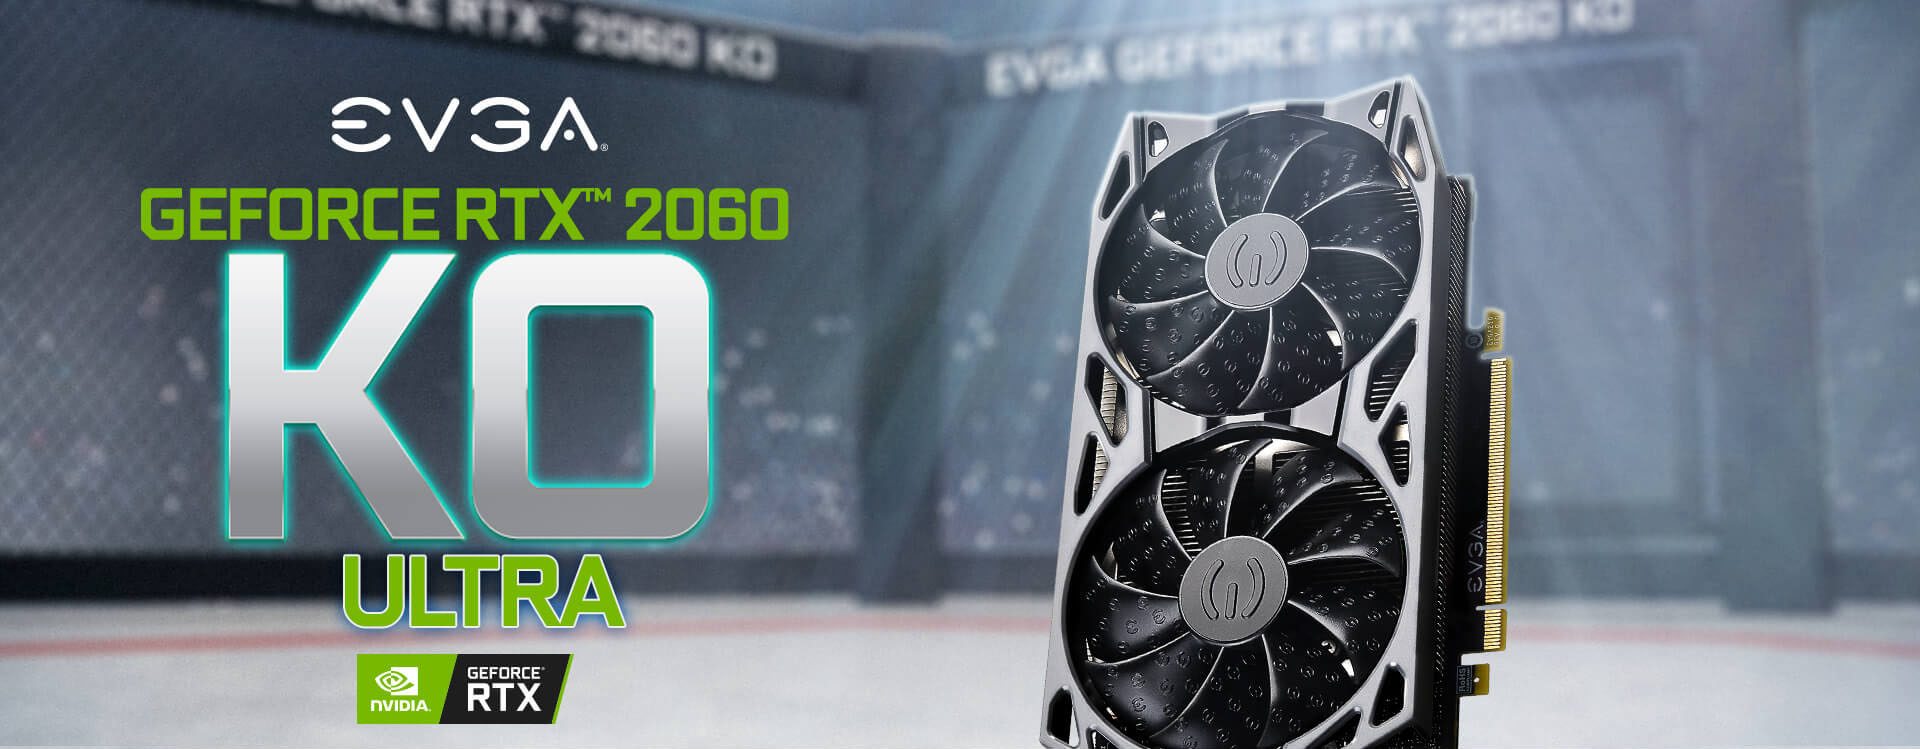 EVGA GeForce RTX 2060 KO GAMING Video Card facing forward